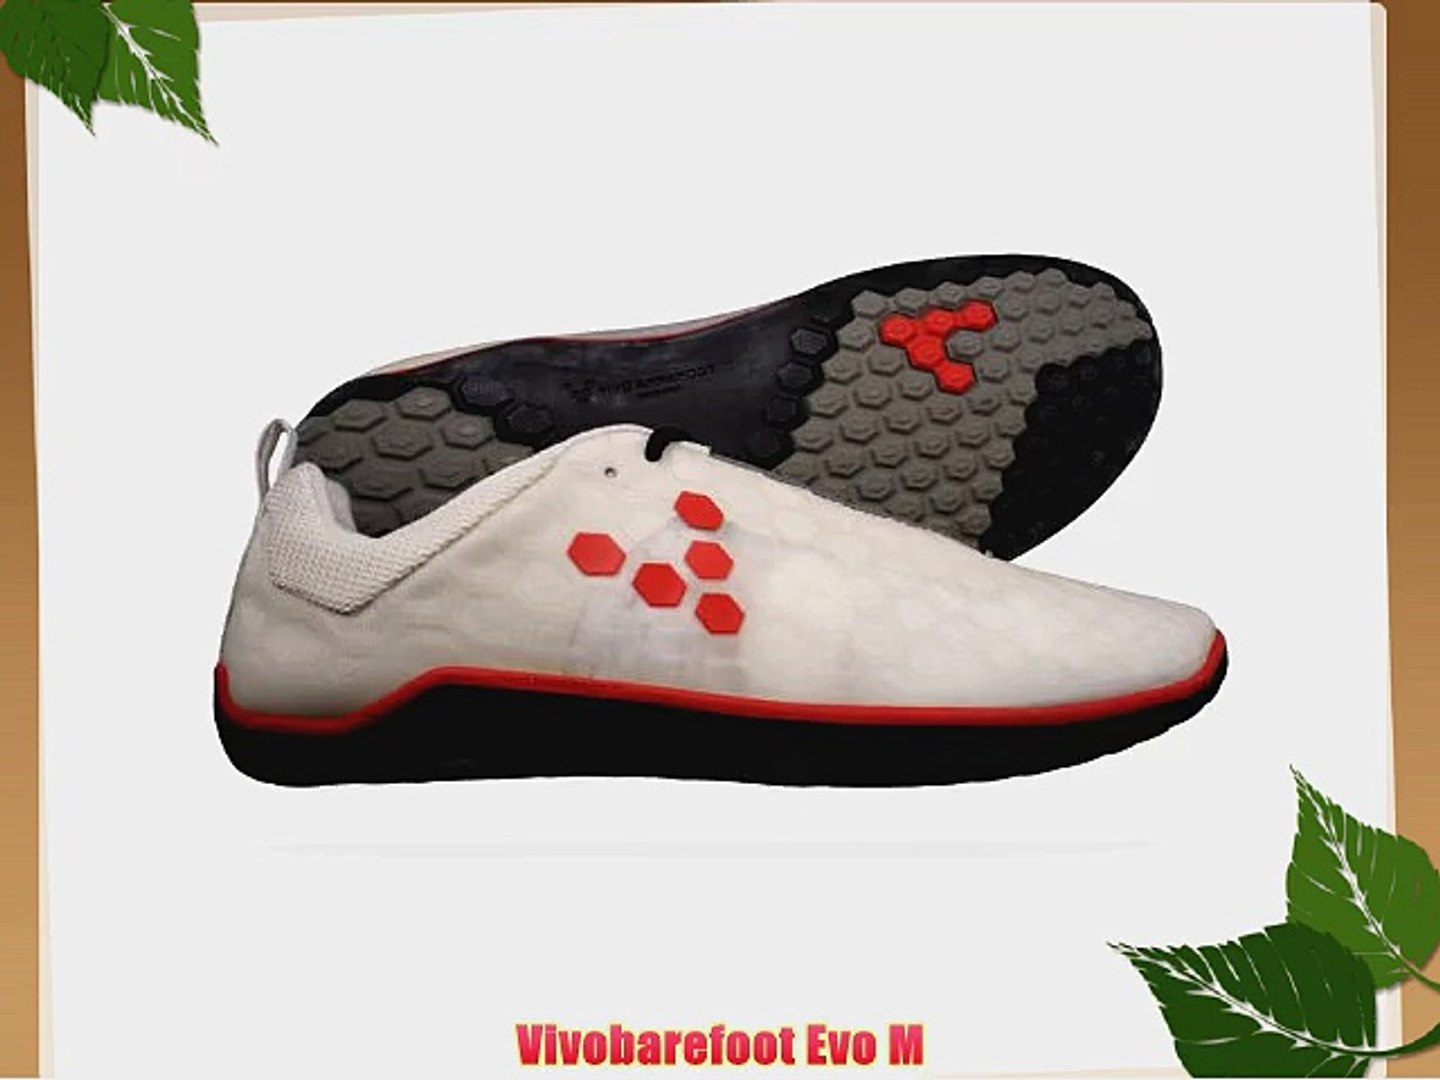 Vivobarefoot Evo M Mens Running Trainers / Shoes - White : Red - SIZE UK 10.5